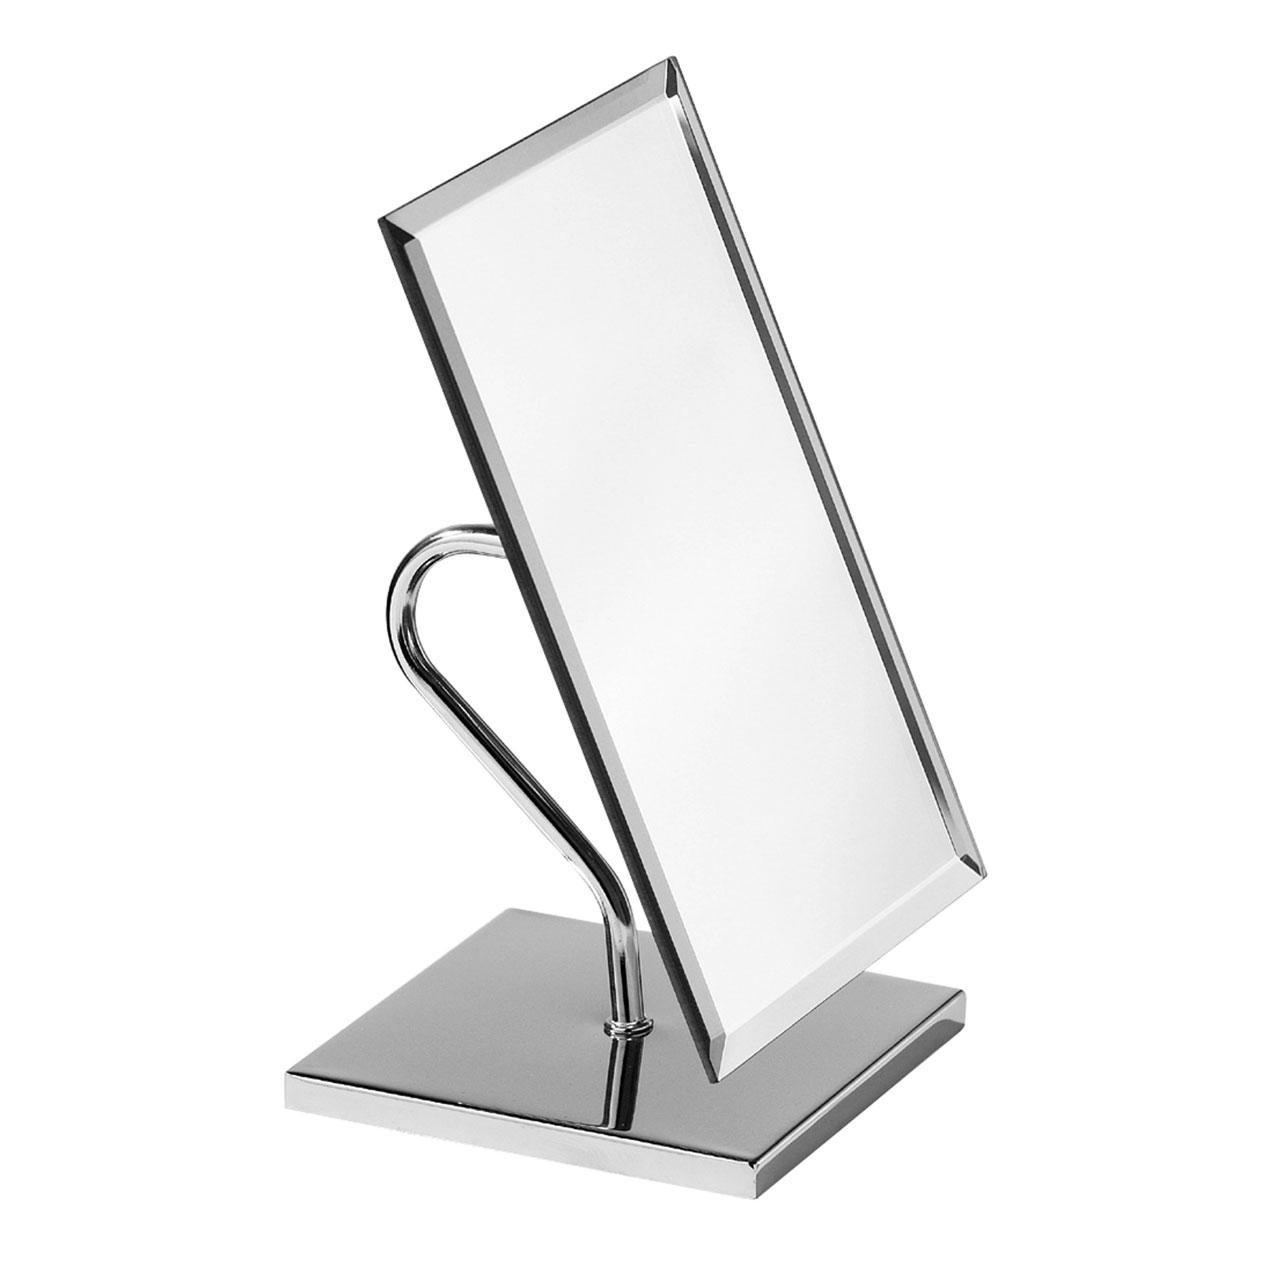 Free Standing Bathroom Mirrors Uk | Home Intended For Small Free Standing Mirrors (Image 9 of 20)